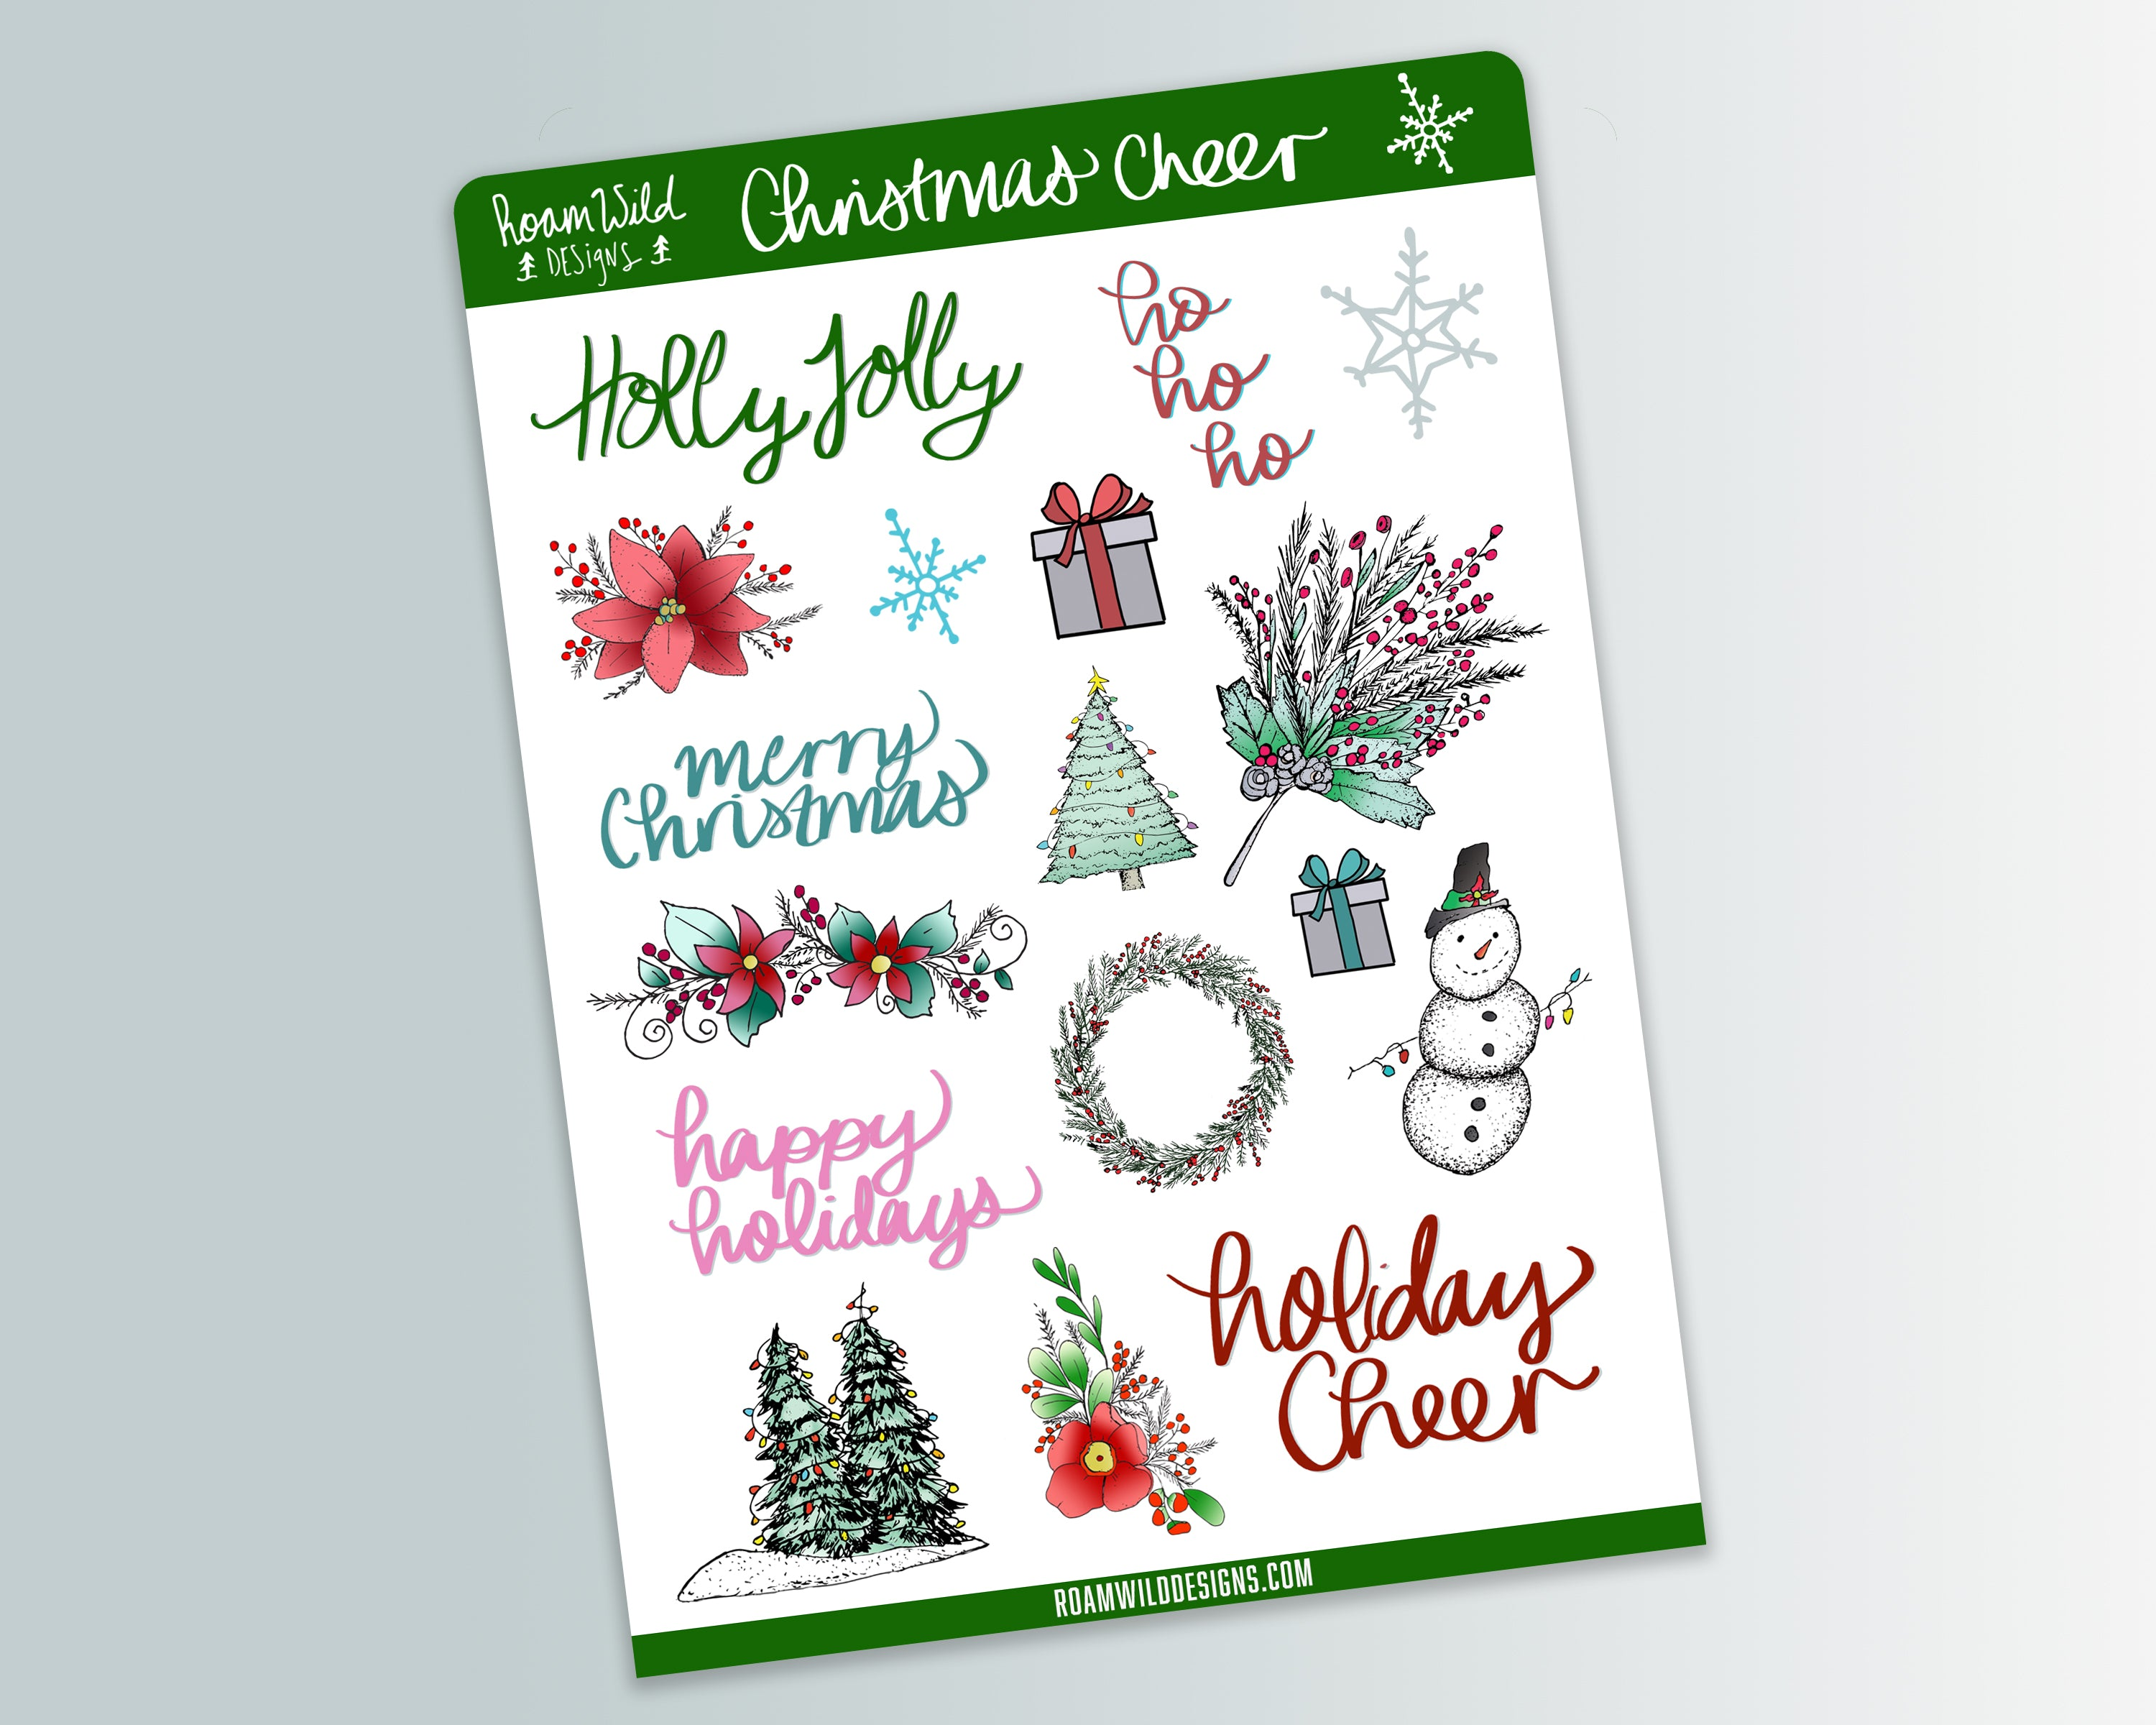 Christmas Cheer Planner Sticker Sheet-Vinyl Sticker-Roam Wild Designs